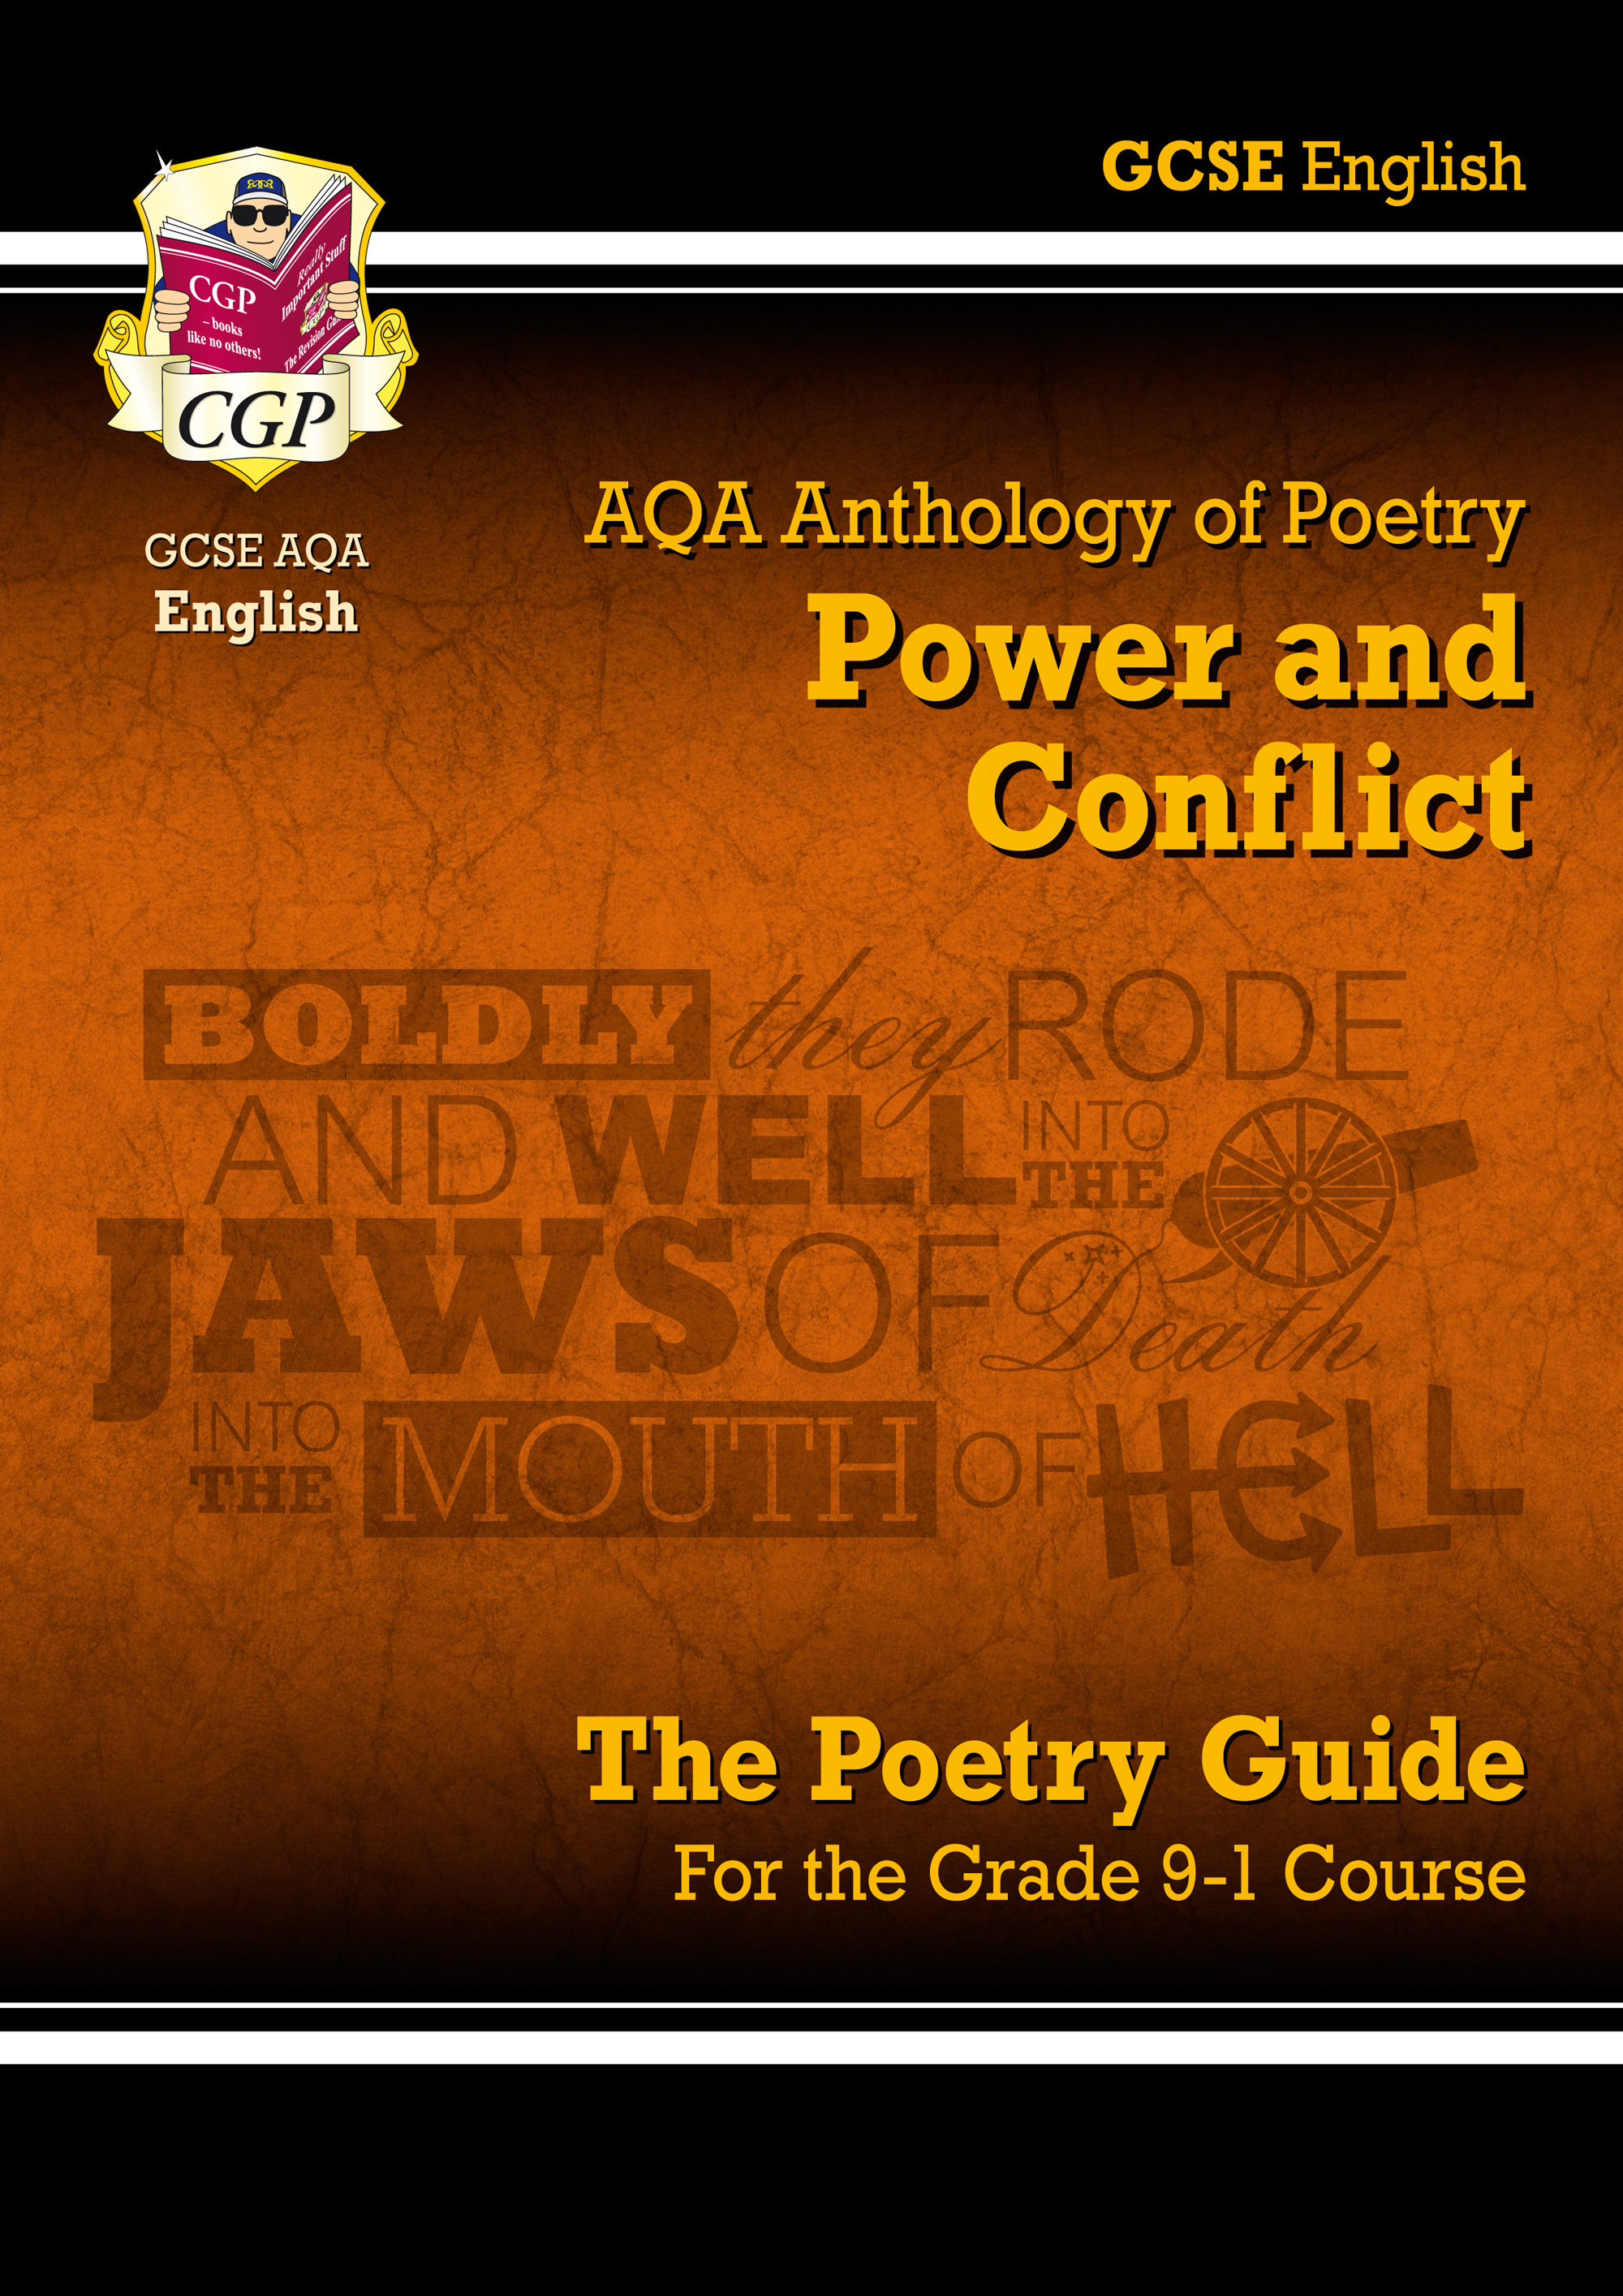 ACHR43 - New GCSE English Literature AQA Poetry Guide: Power & Conflict Anthology - for the Grade 9-